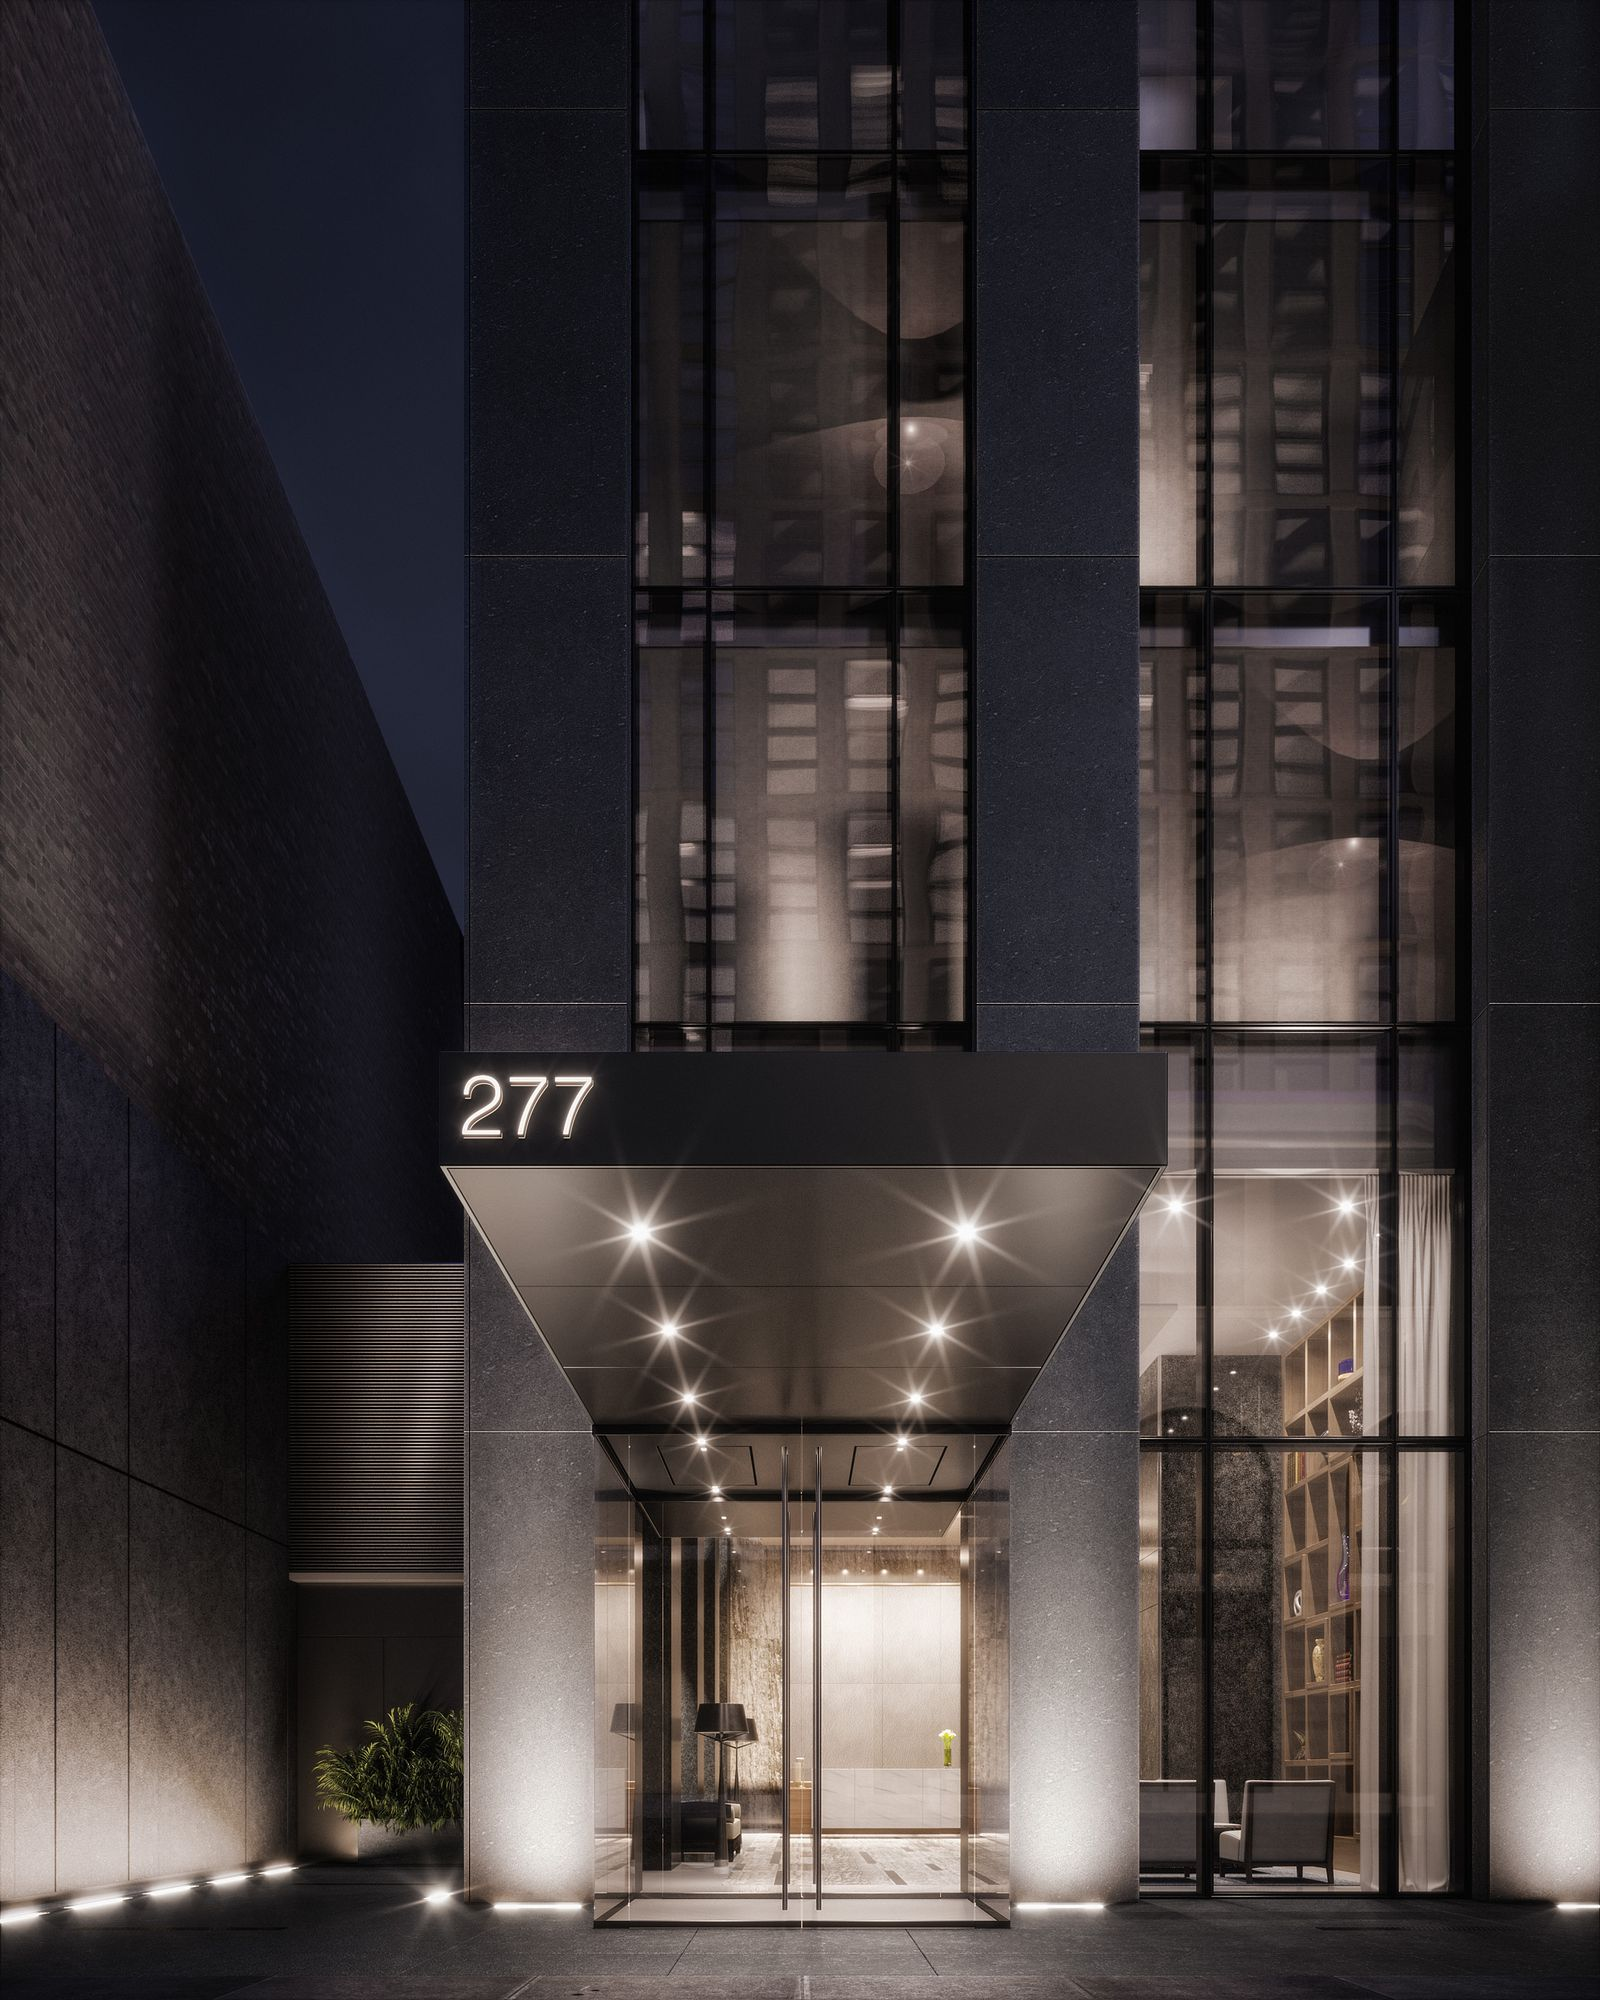 New Renderings Unveiled of The Luxurious, Rafael Viñoly-Designed 277 Fifth Avenue